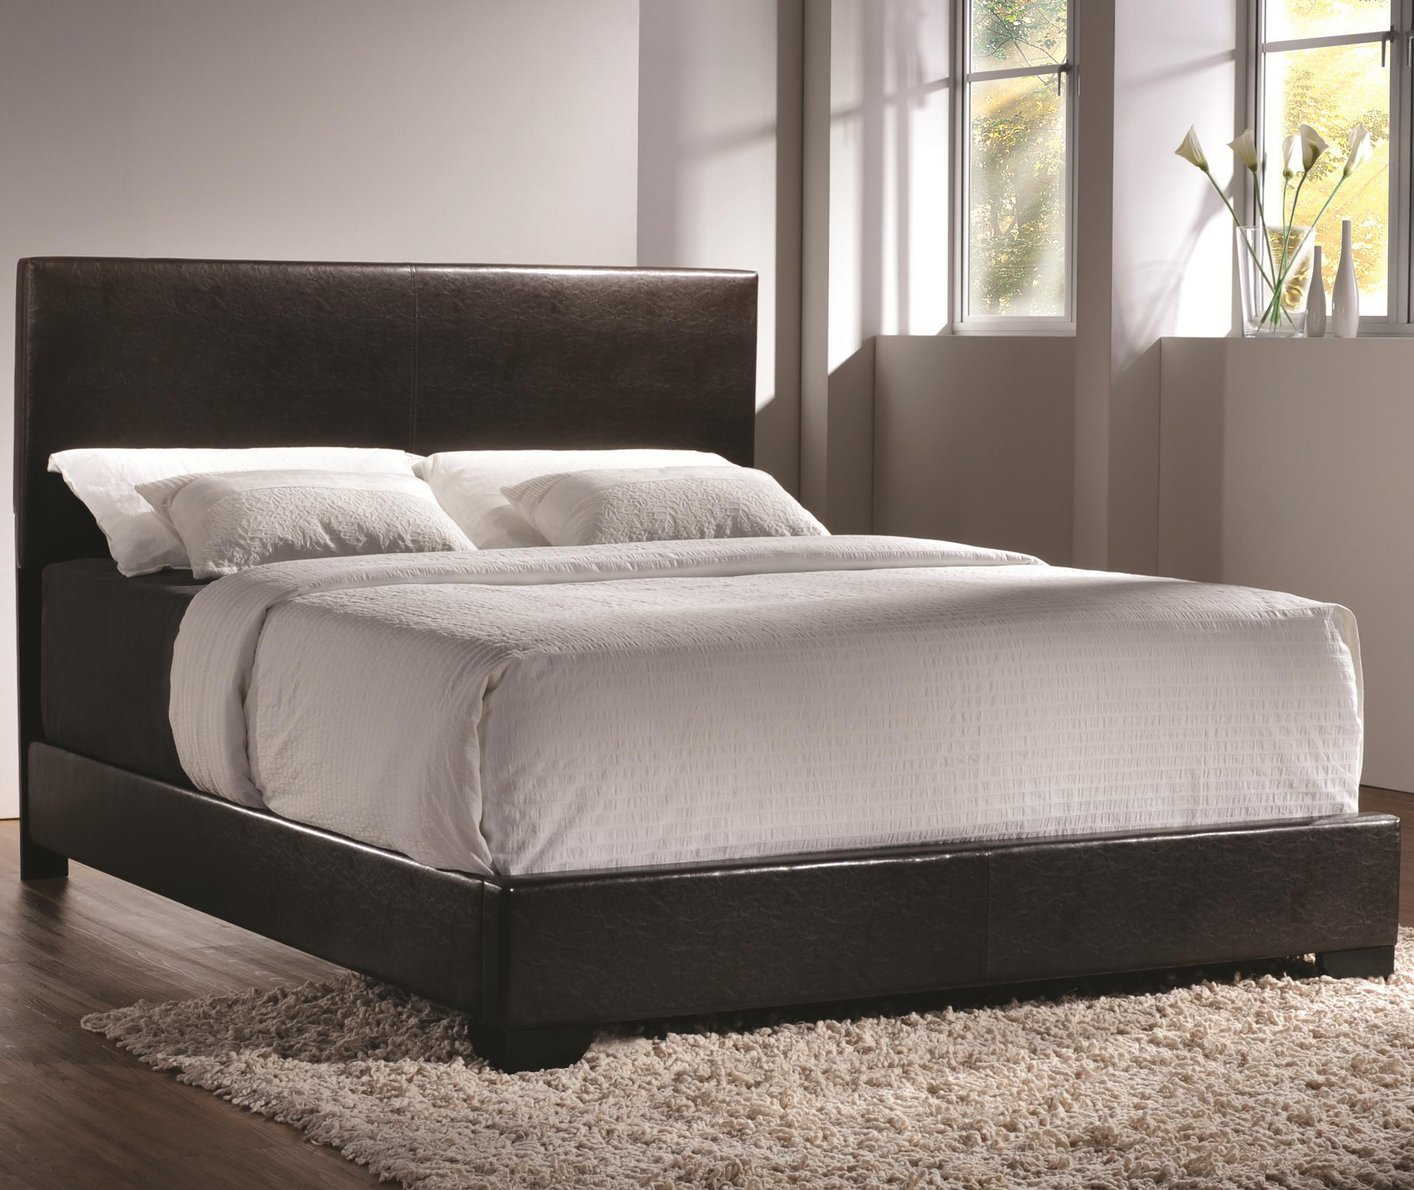 full size upholstered bed. Brown Leather Full Size Bed Upholstered